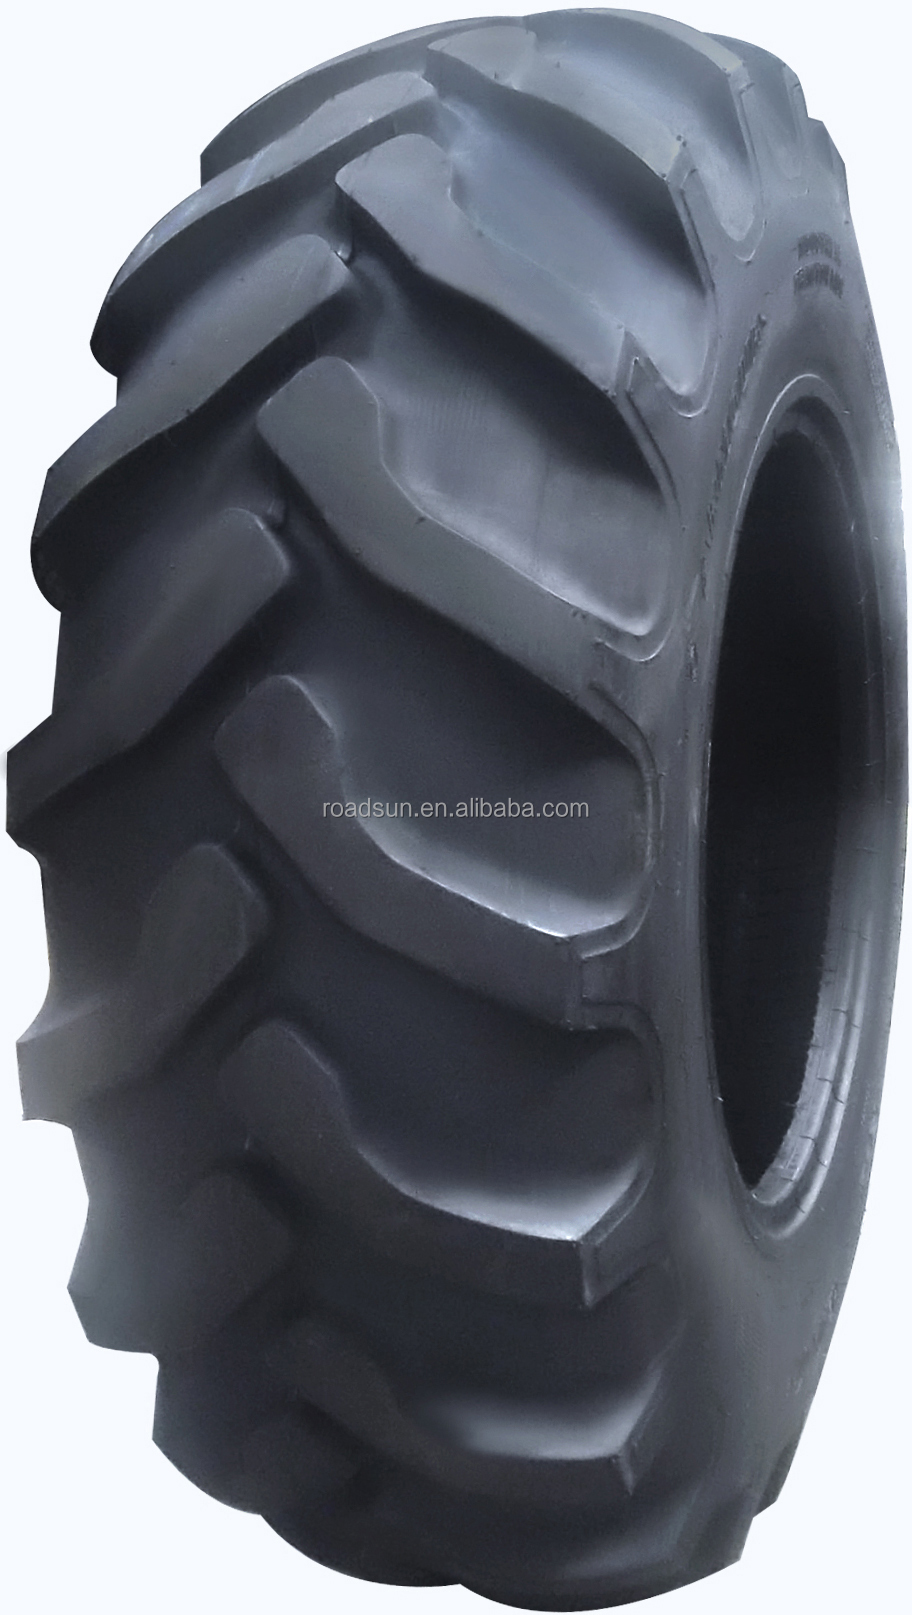 China Top Quality Agricultural Tyre 10.0/75x15.3 9.5-16 R1 900-16 ...